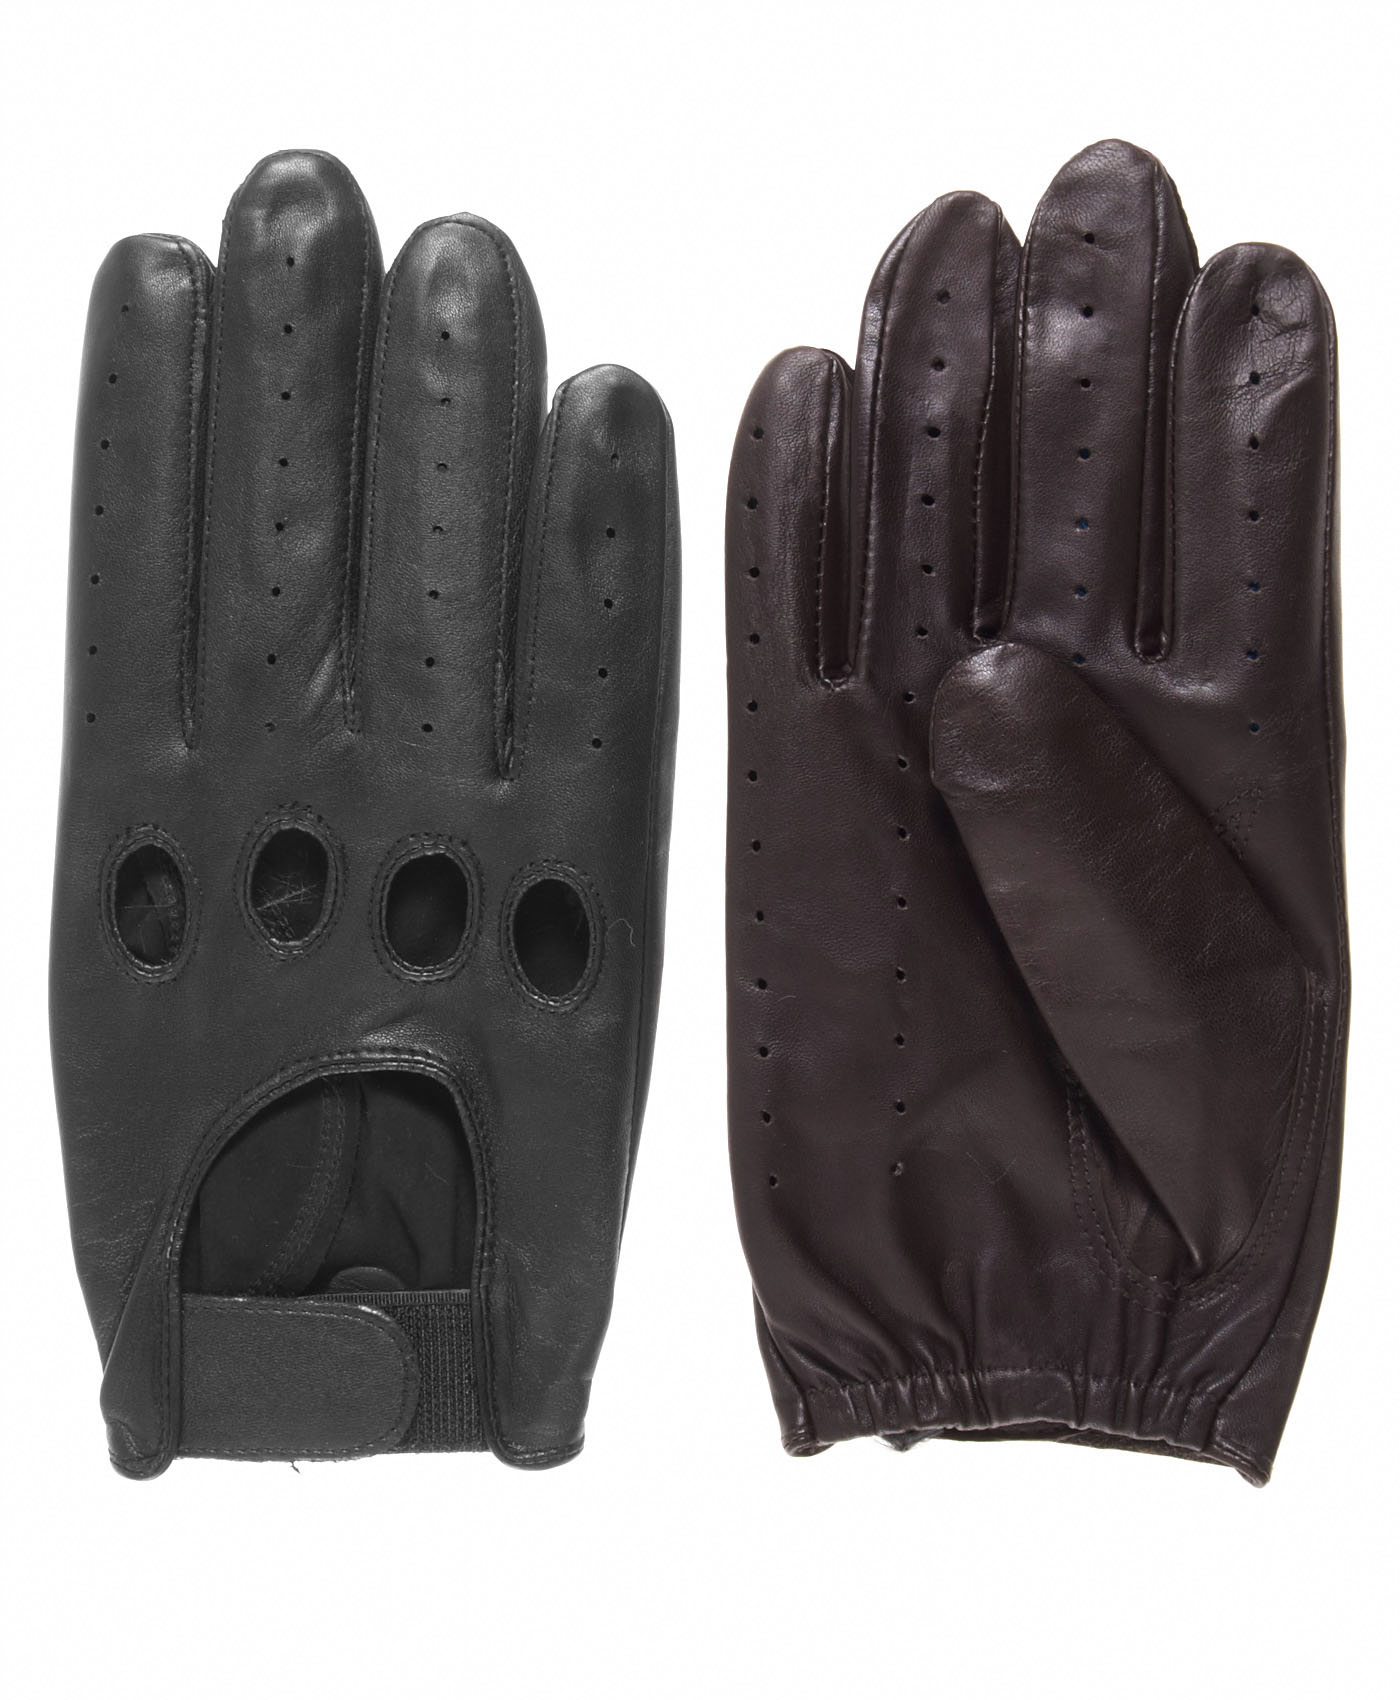 Driving gloves at walmart - Pratt And Hart Men S Leather Driving Gloves With Velcro Strap Walmart Com